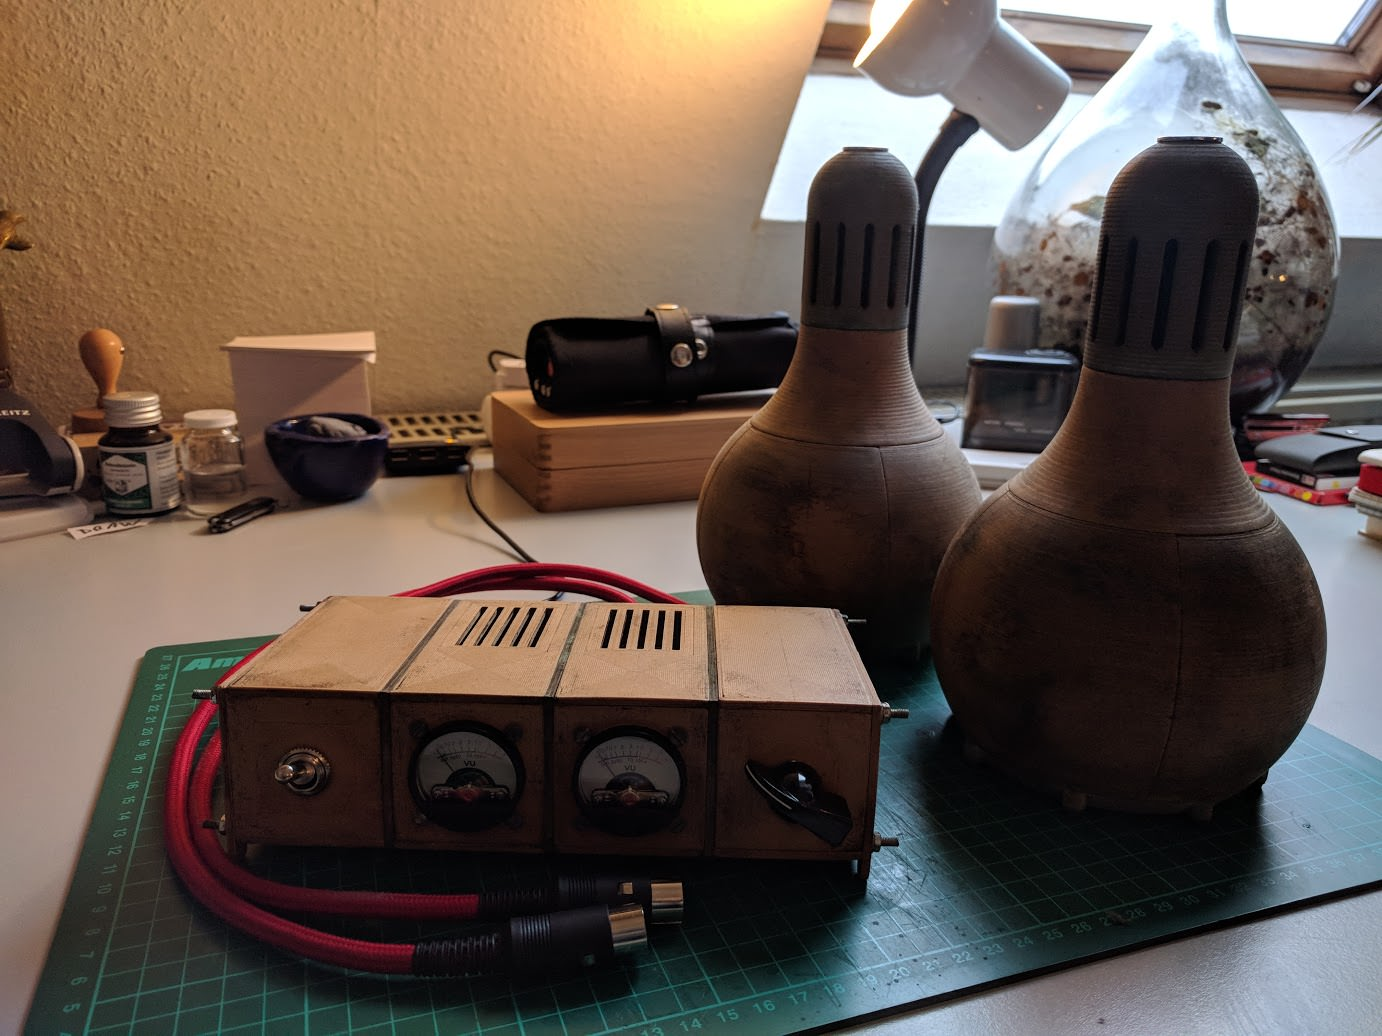 This Week in Making: Build Your Own Speakers, Construct a Lightsaber, and More